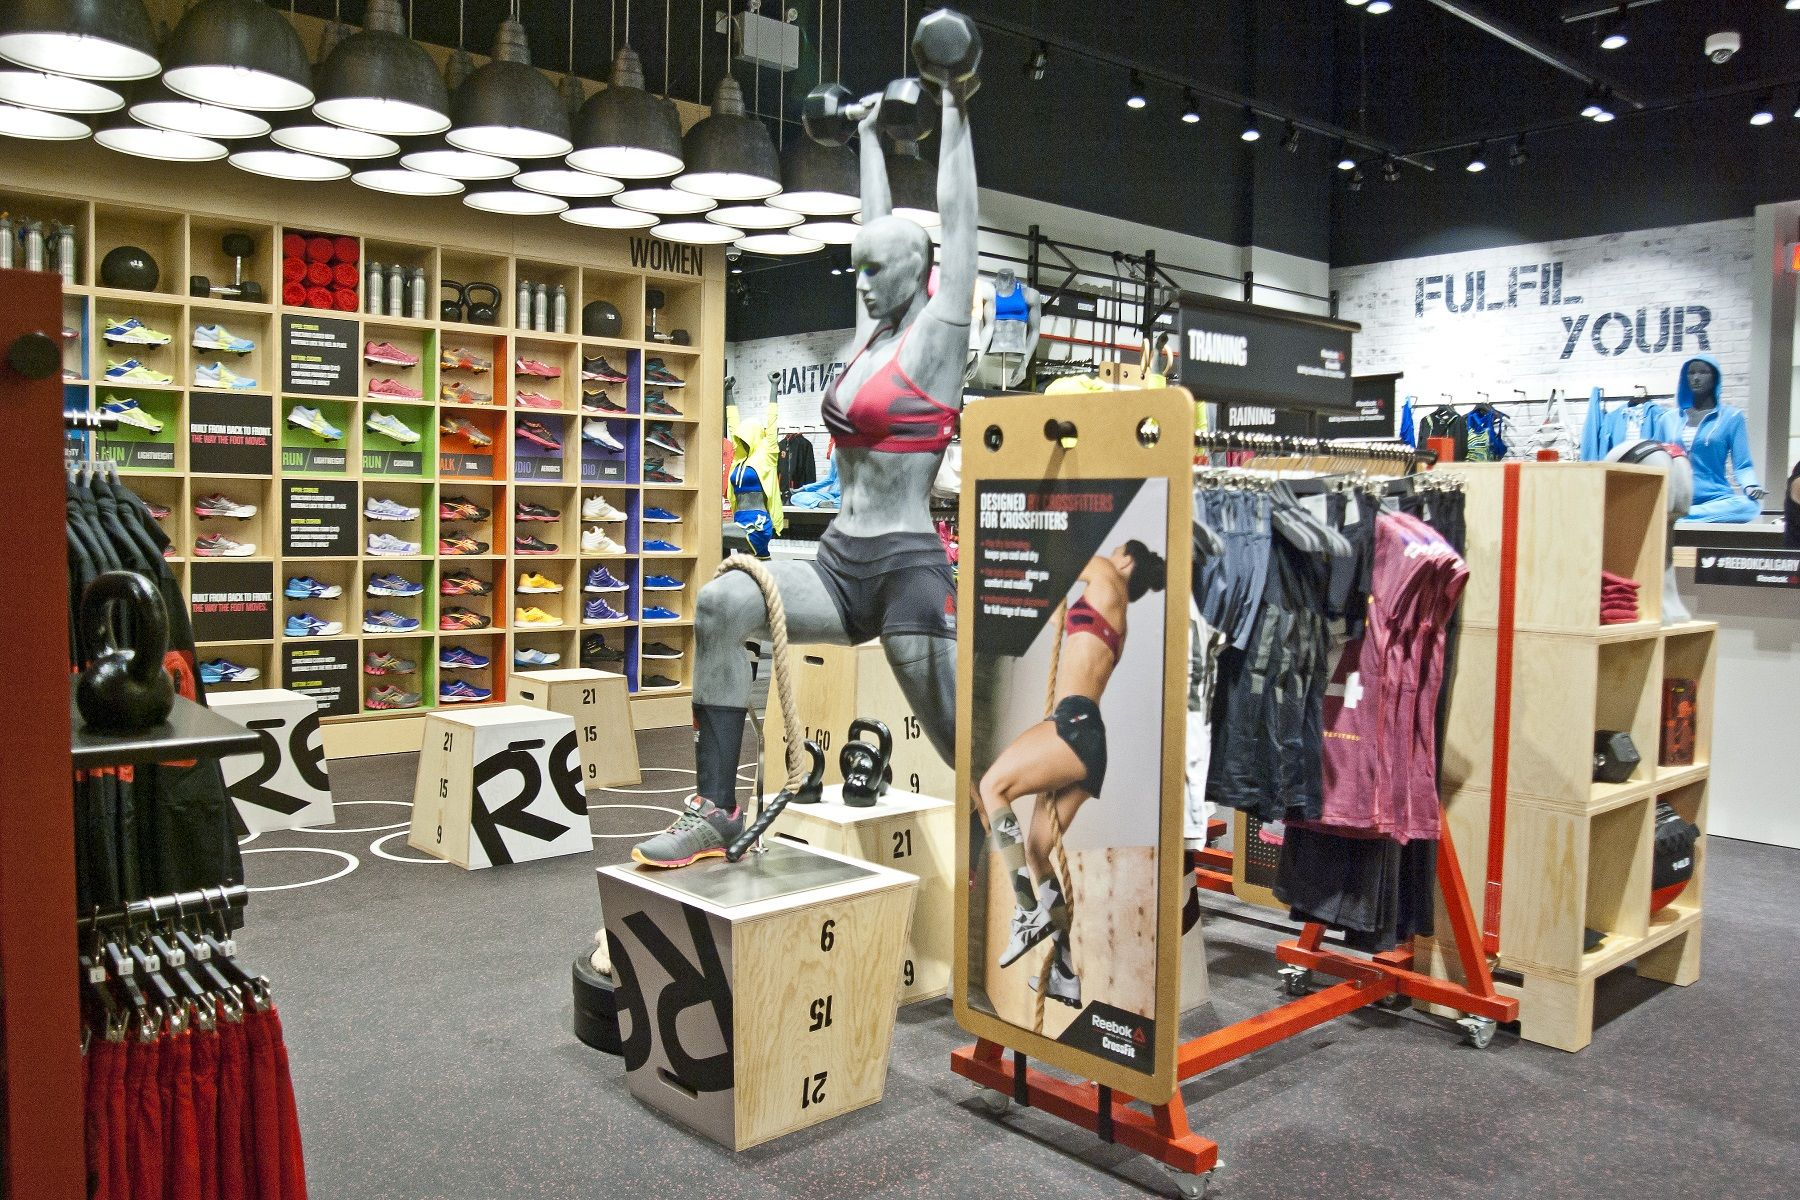 reebok fit hub store crossfit gym opens in new york city interior design shops nyc Reebok | Keeping Fit #sportsretail. Find this Pin and more on Retail store  display design ...